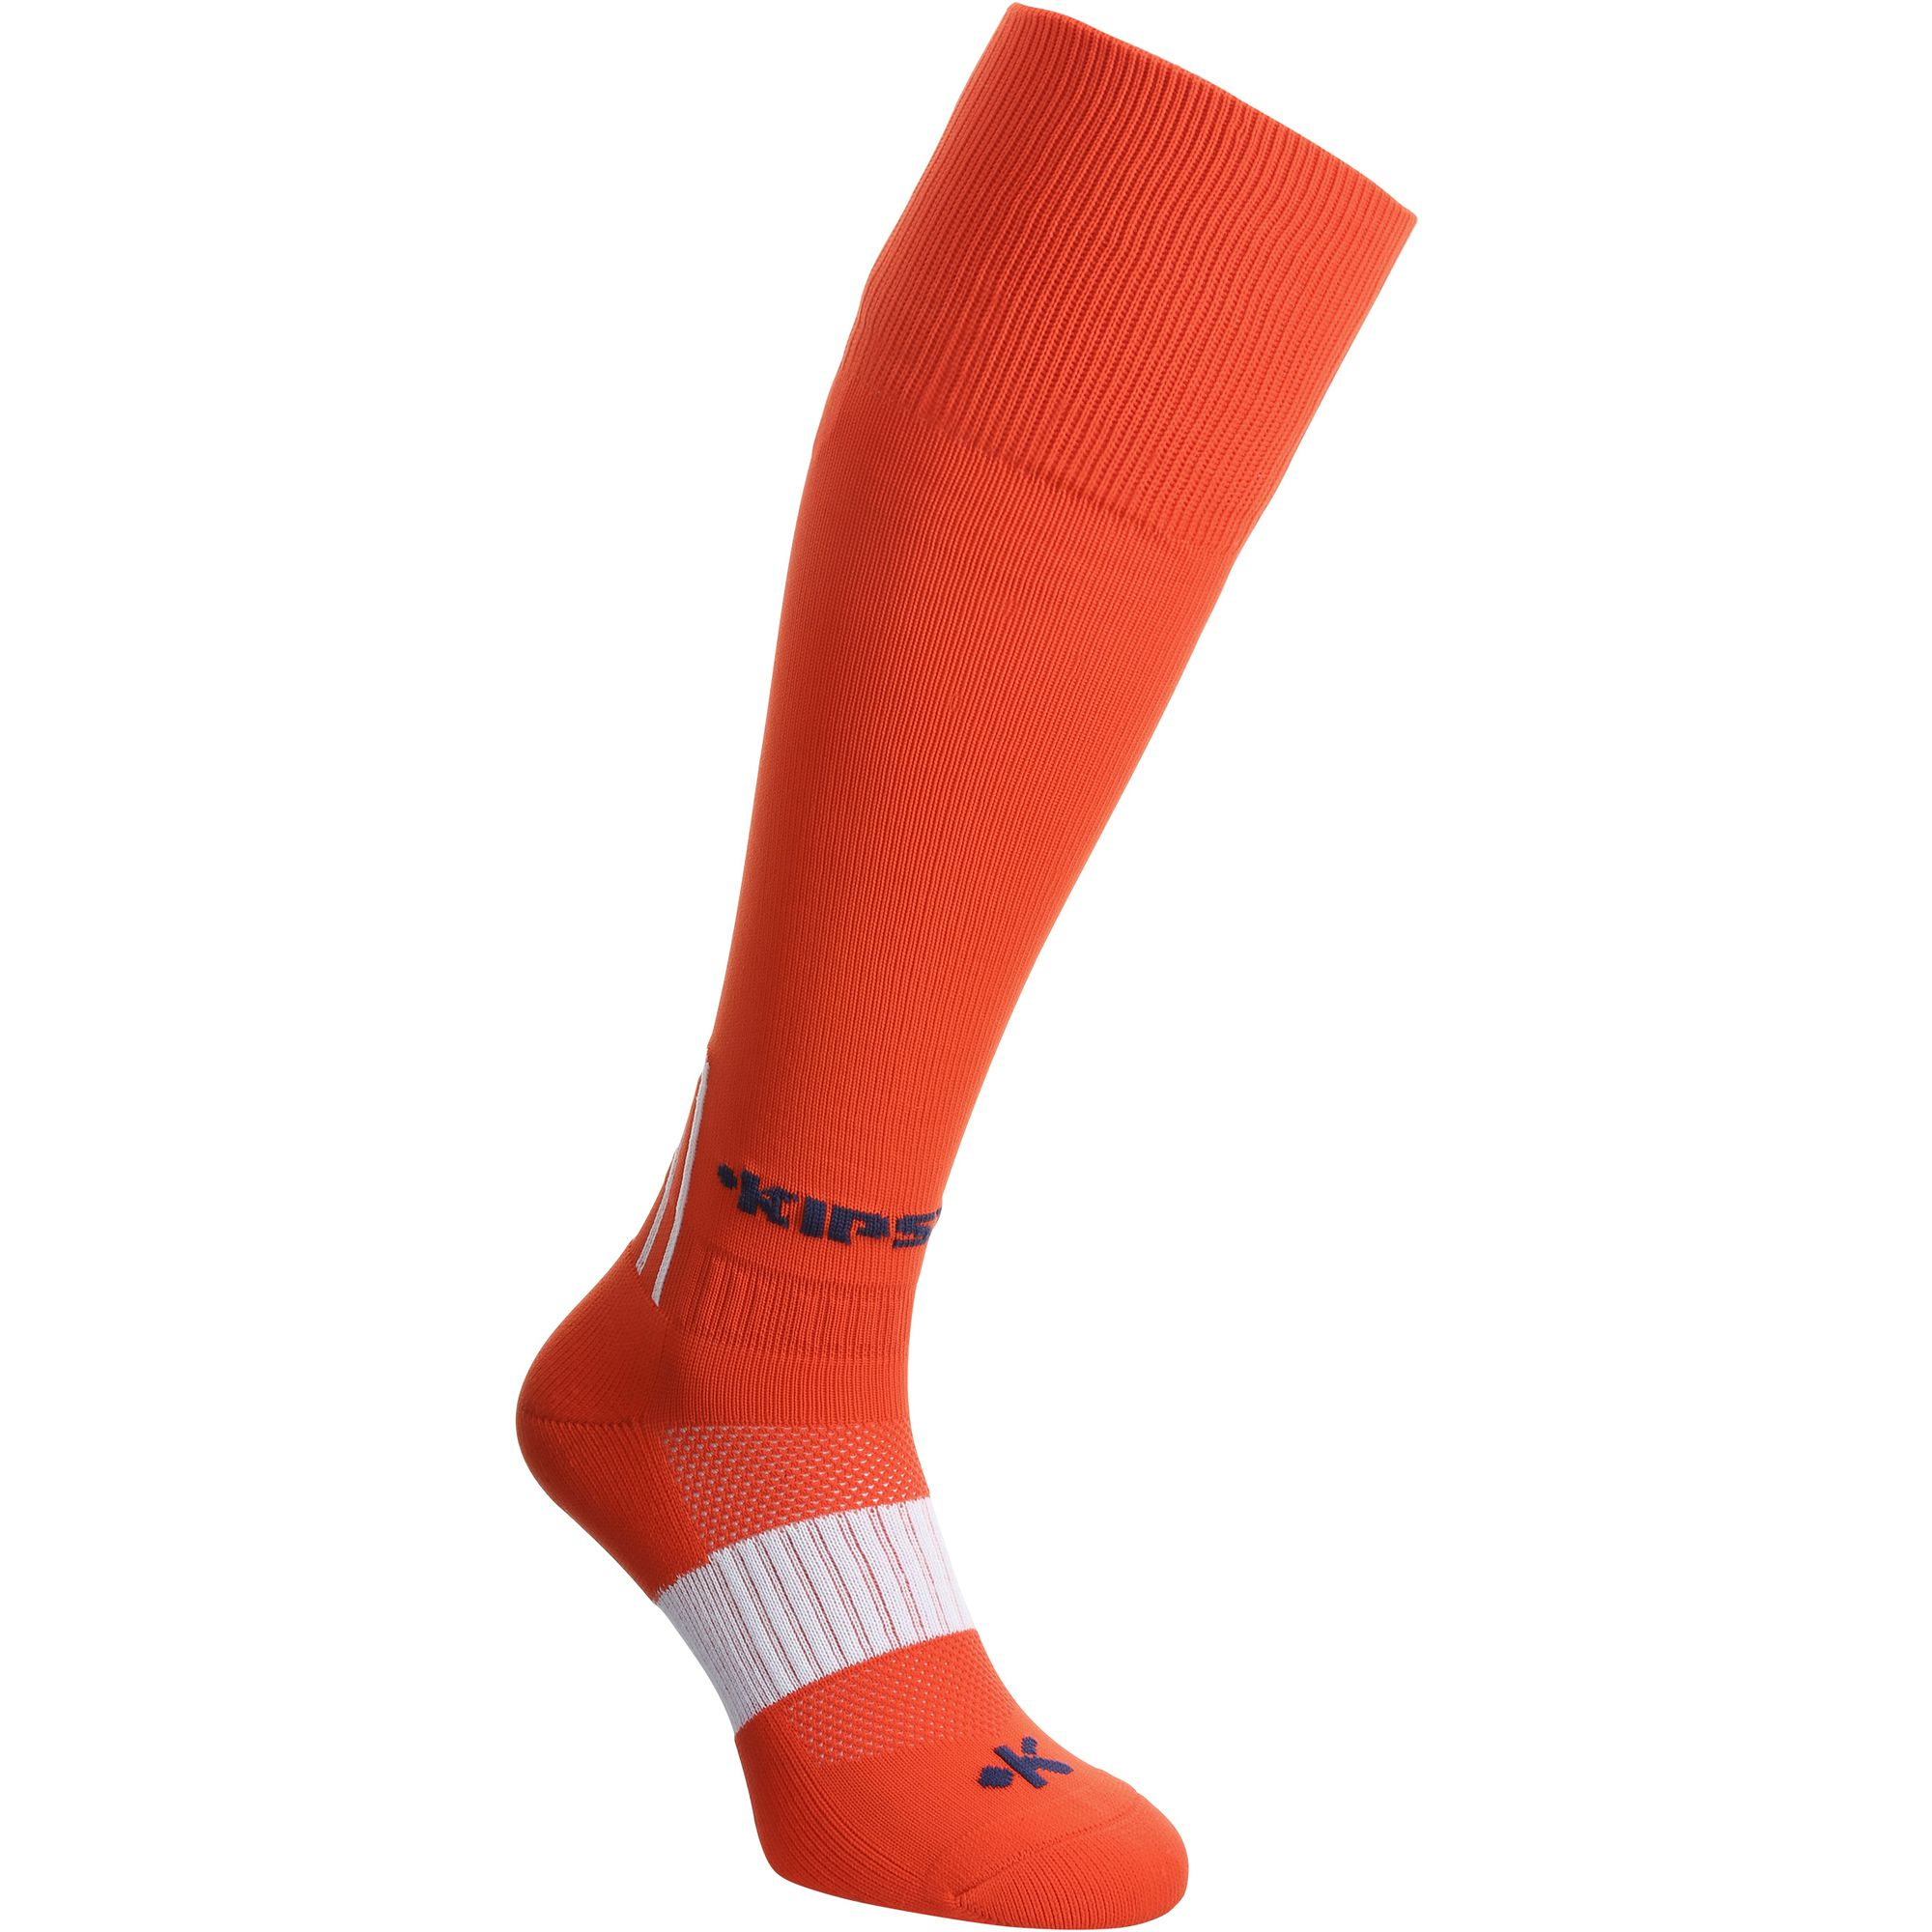 Chaussettes hautes football adulte F500 rouge